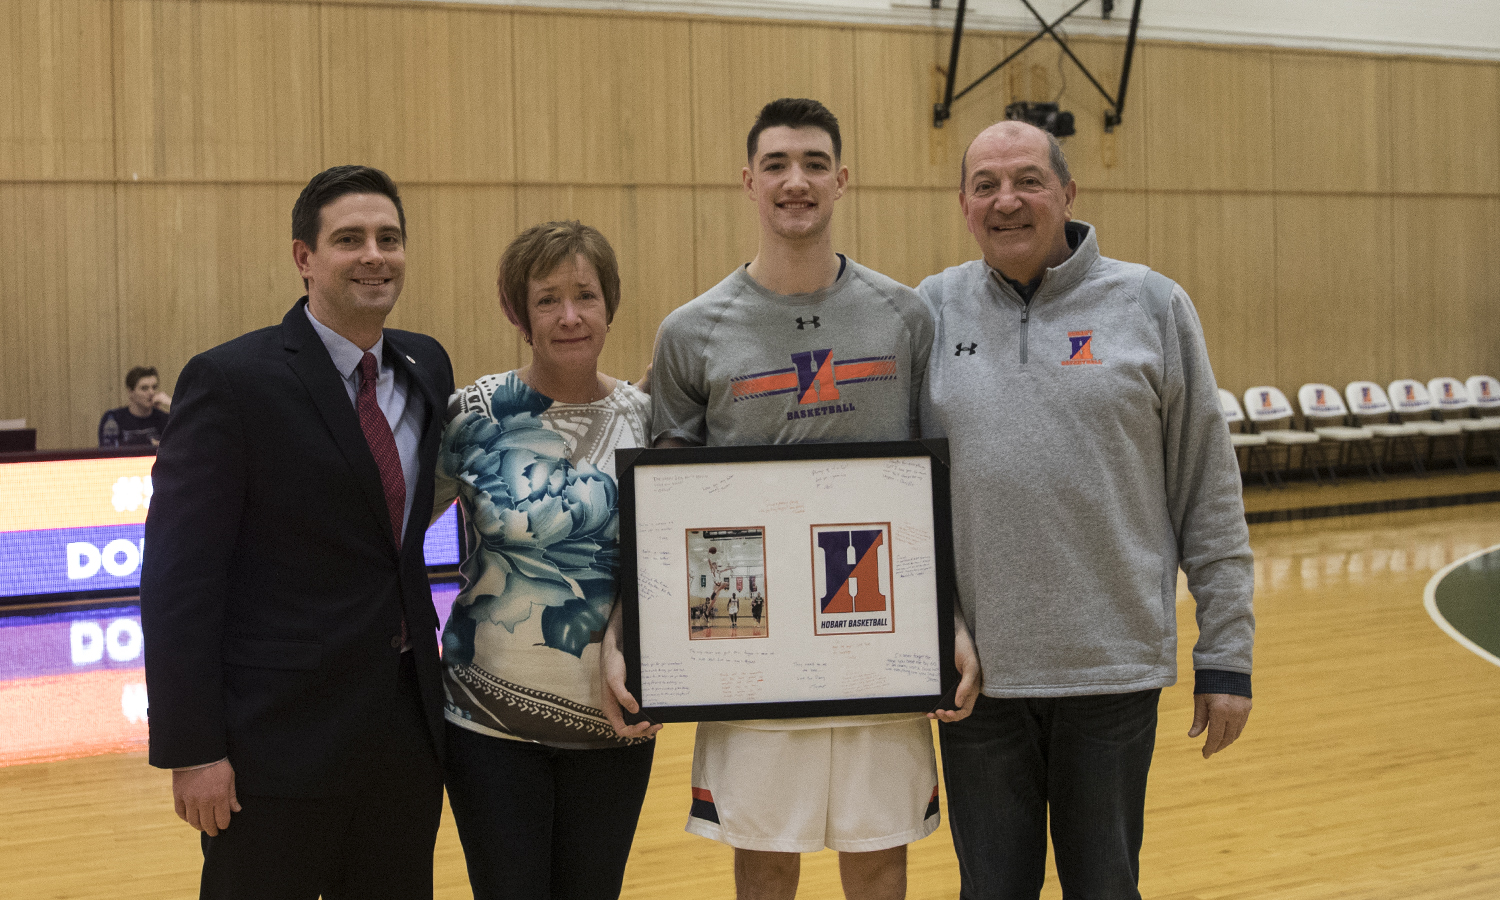 Colin Dougherty '19 is honored for his contributions to the basketball program by his coaches and family at saturday's senior night event. The Statesman went on to defeat Bard 83-80.